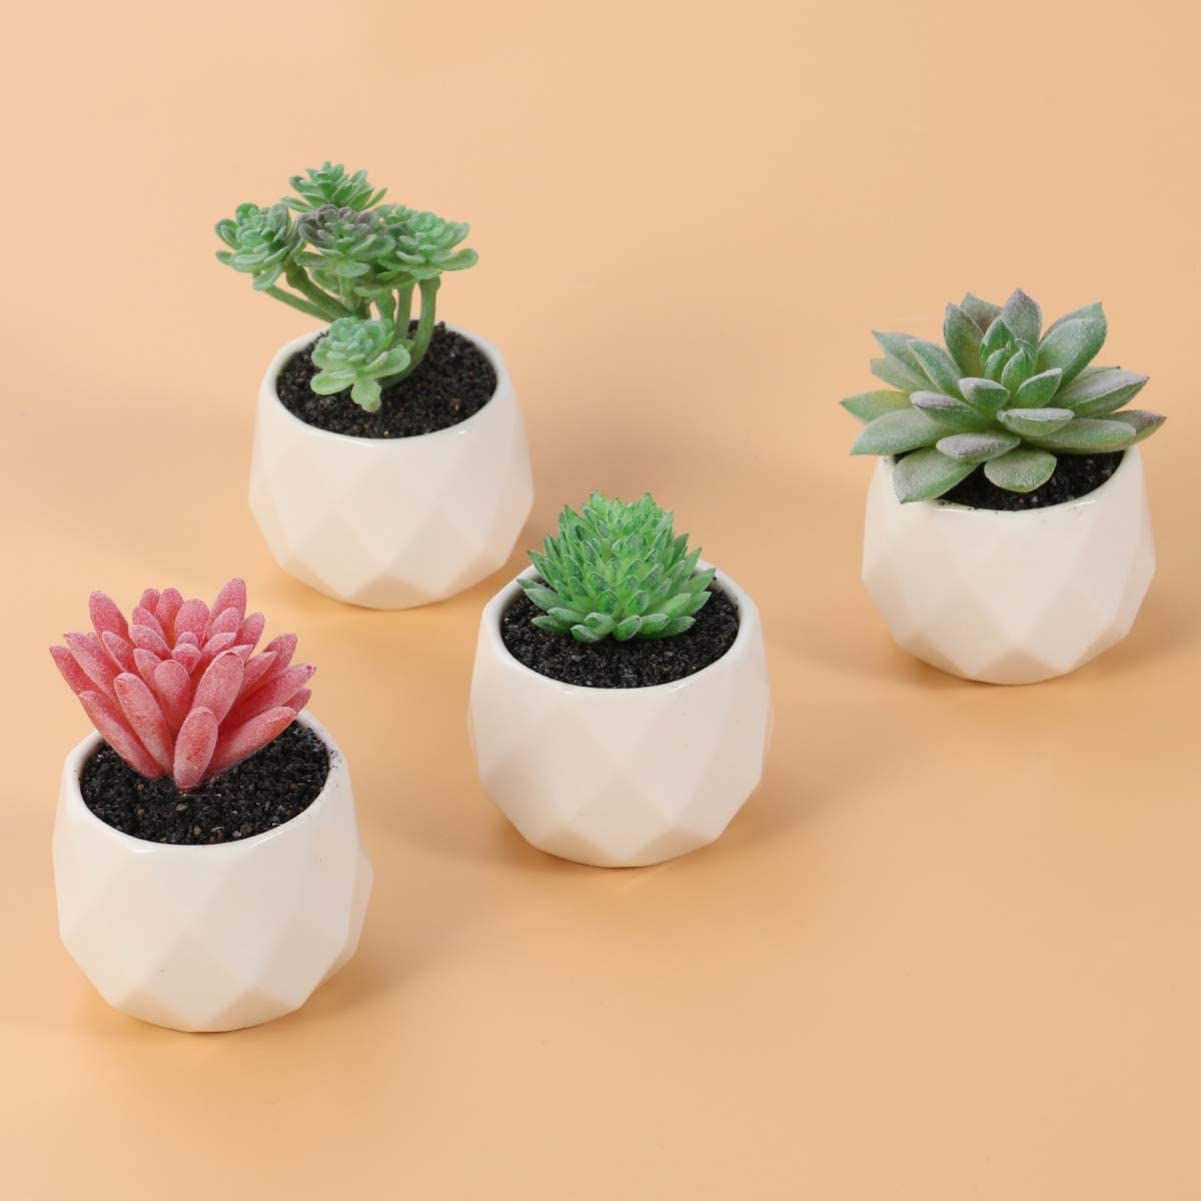 Yardwe 4PCS Artificial Succulent Plants Fake Plant Potted Greenery Tabletop Decor in White Ceramic Pots for Home Office Outdoor Indoor